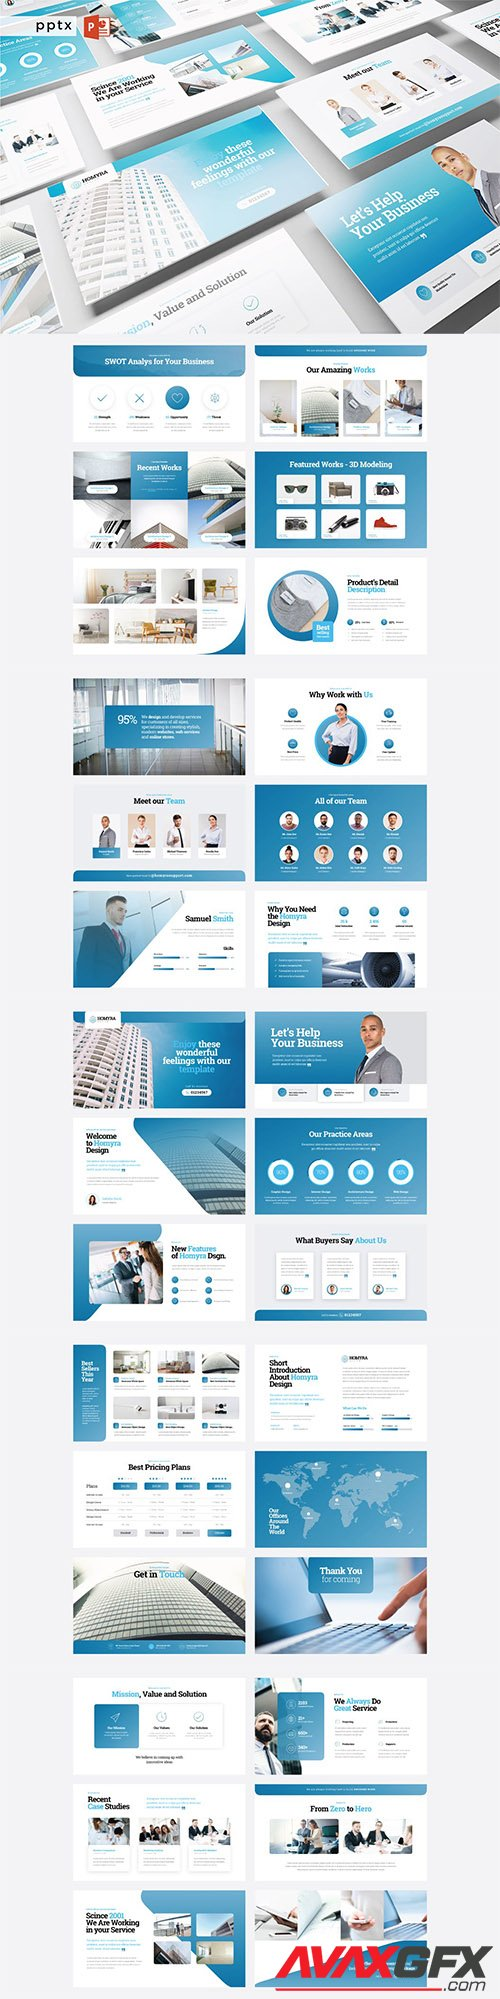 HOMYRA - Business PowerPoint, Keynote, Google Slides Templates